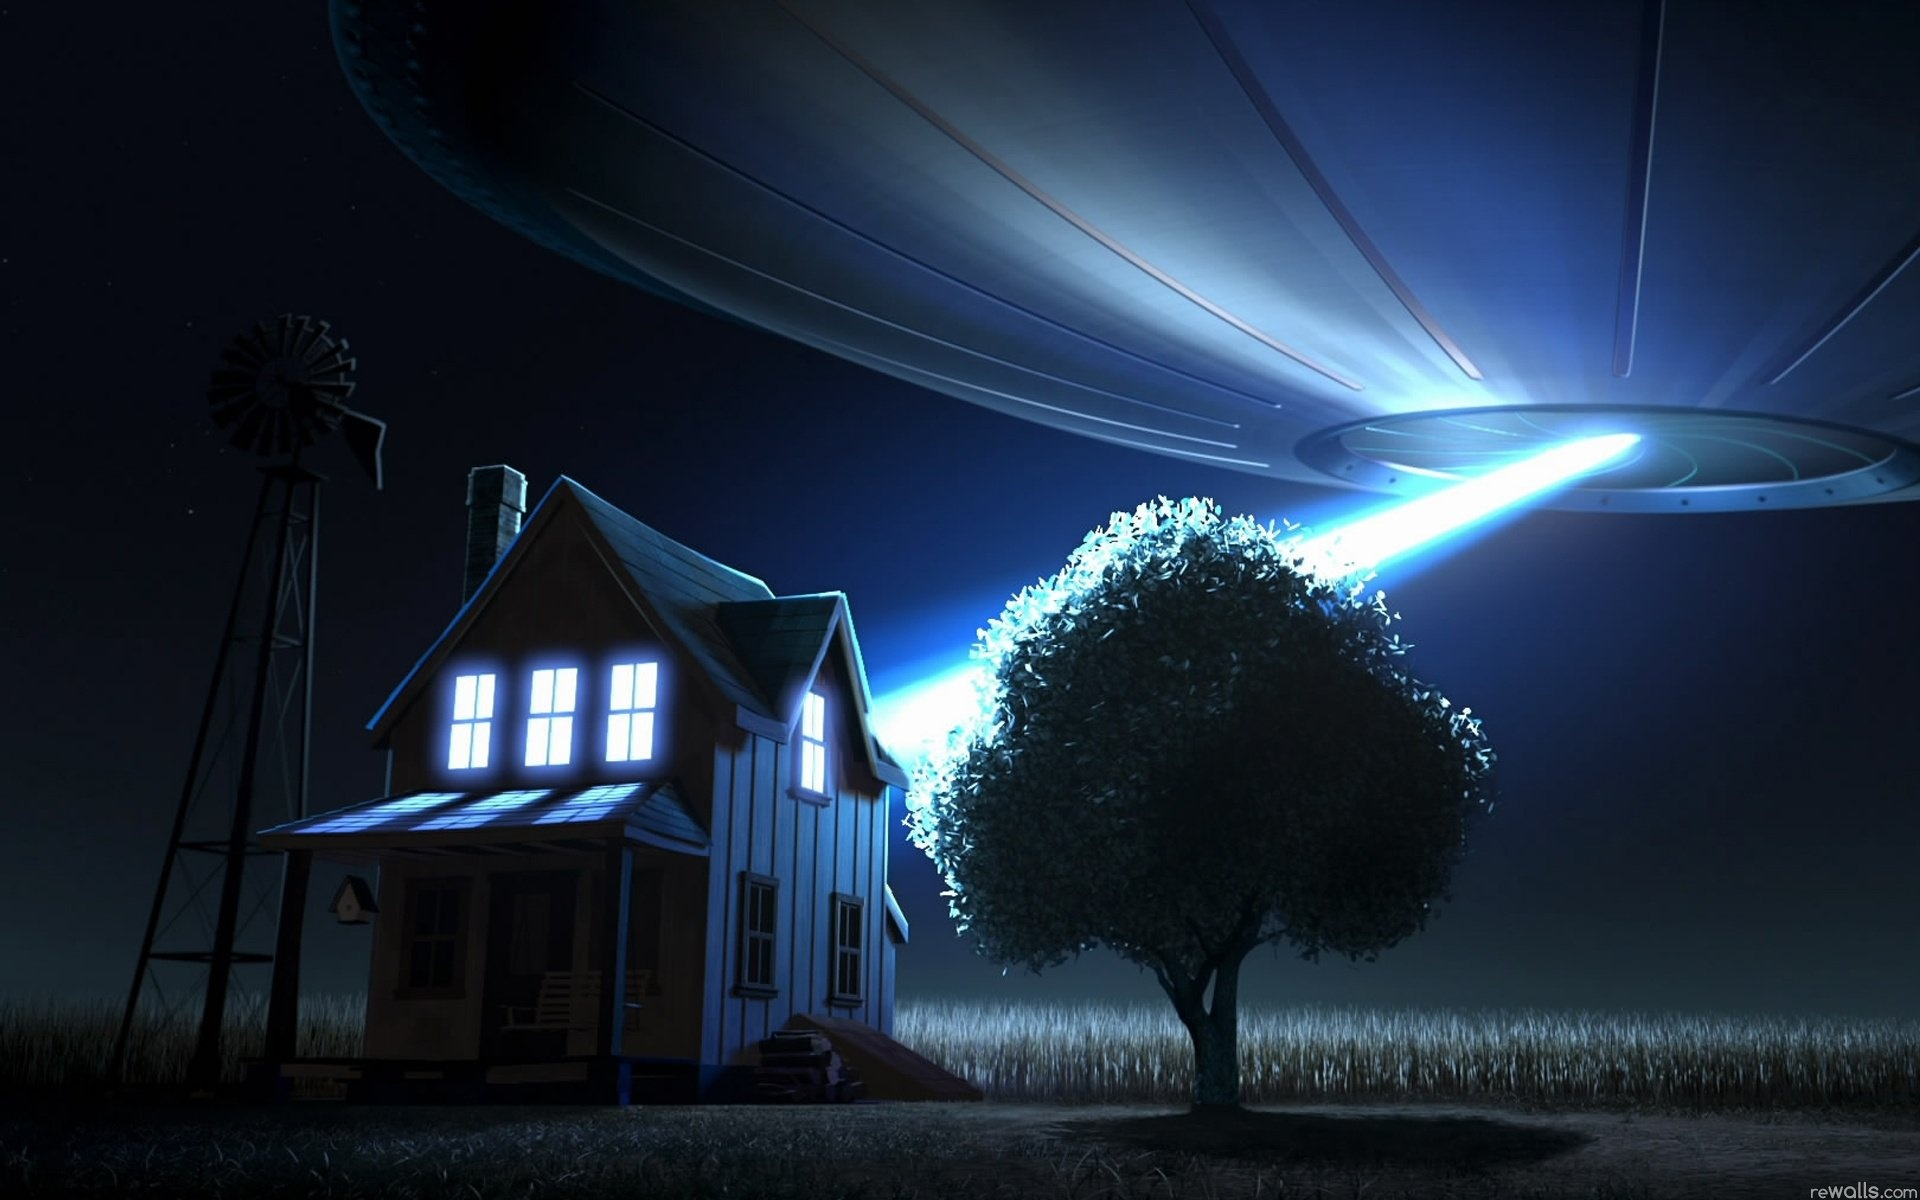 an analysis of the existence of ufos This alone is not the only reason we believe in the existence of extraterrestrial life and ufos  alien existence  aliens expresses its major analysis.